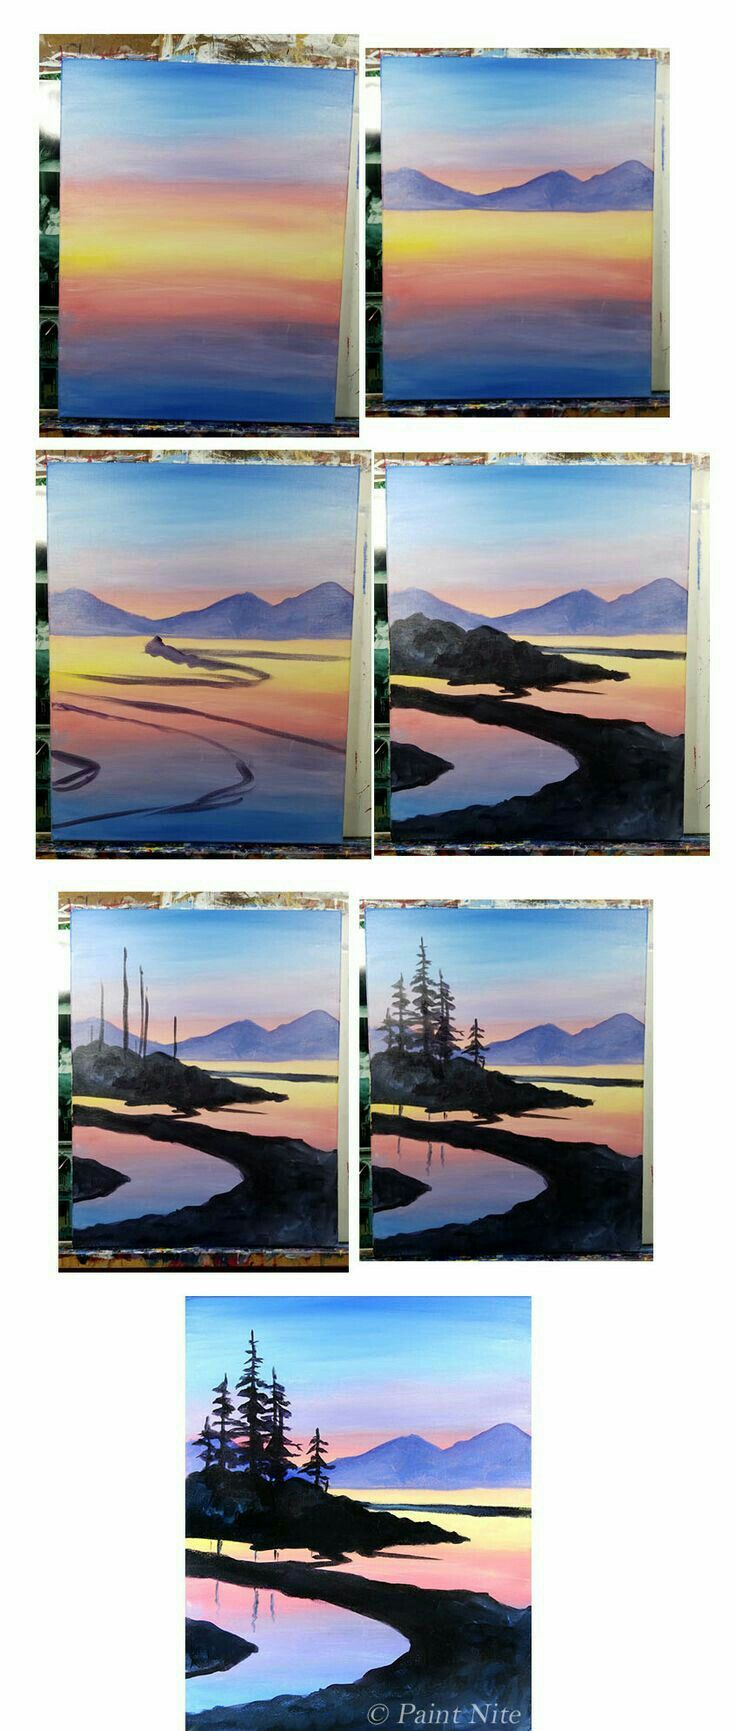 How To Paint Mountains Landscape Watercolor Painting Easy Step